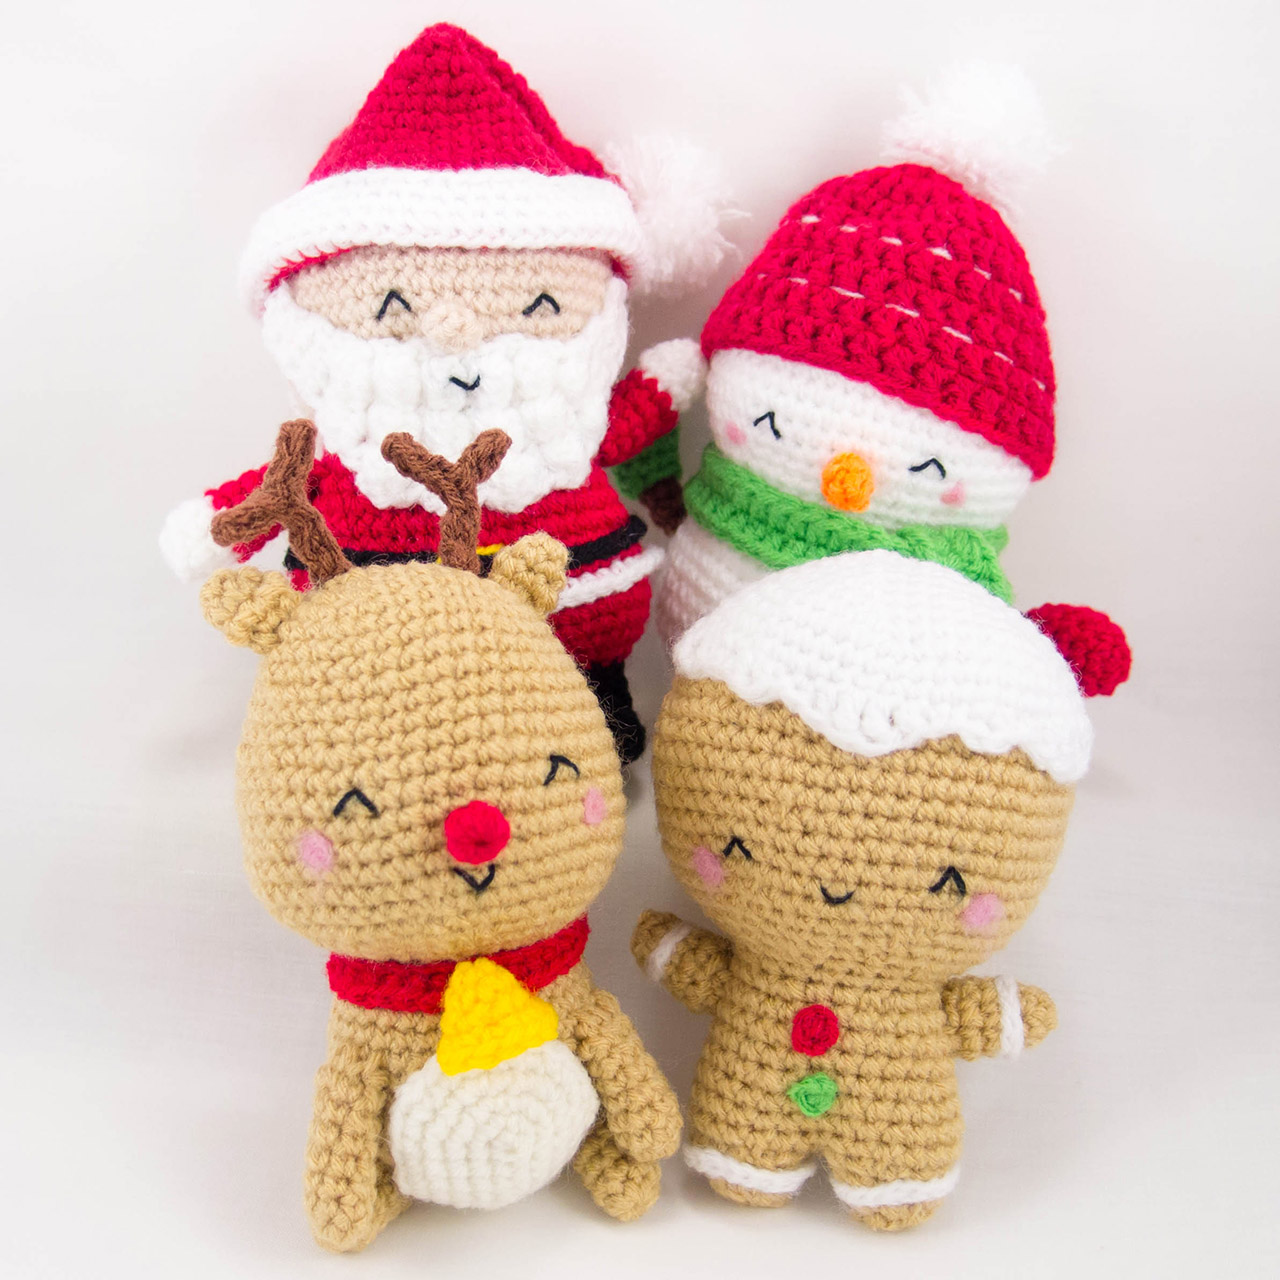 Luckily I still managed to finish all the Christmas patterns! They are ...